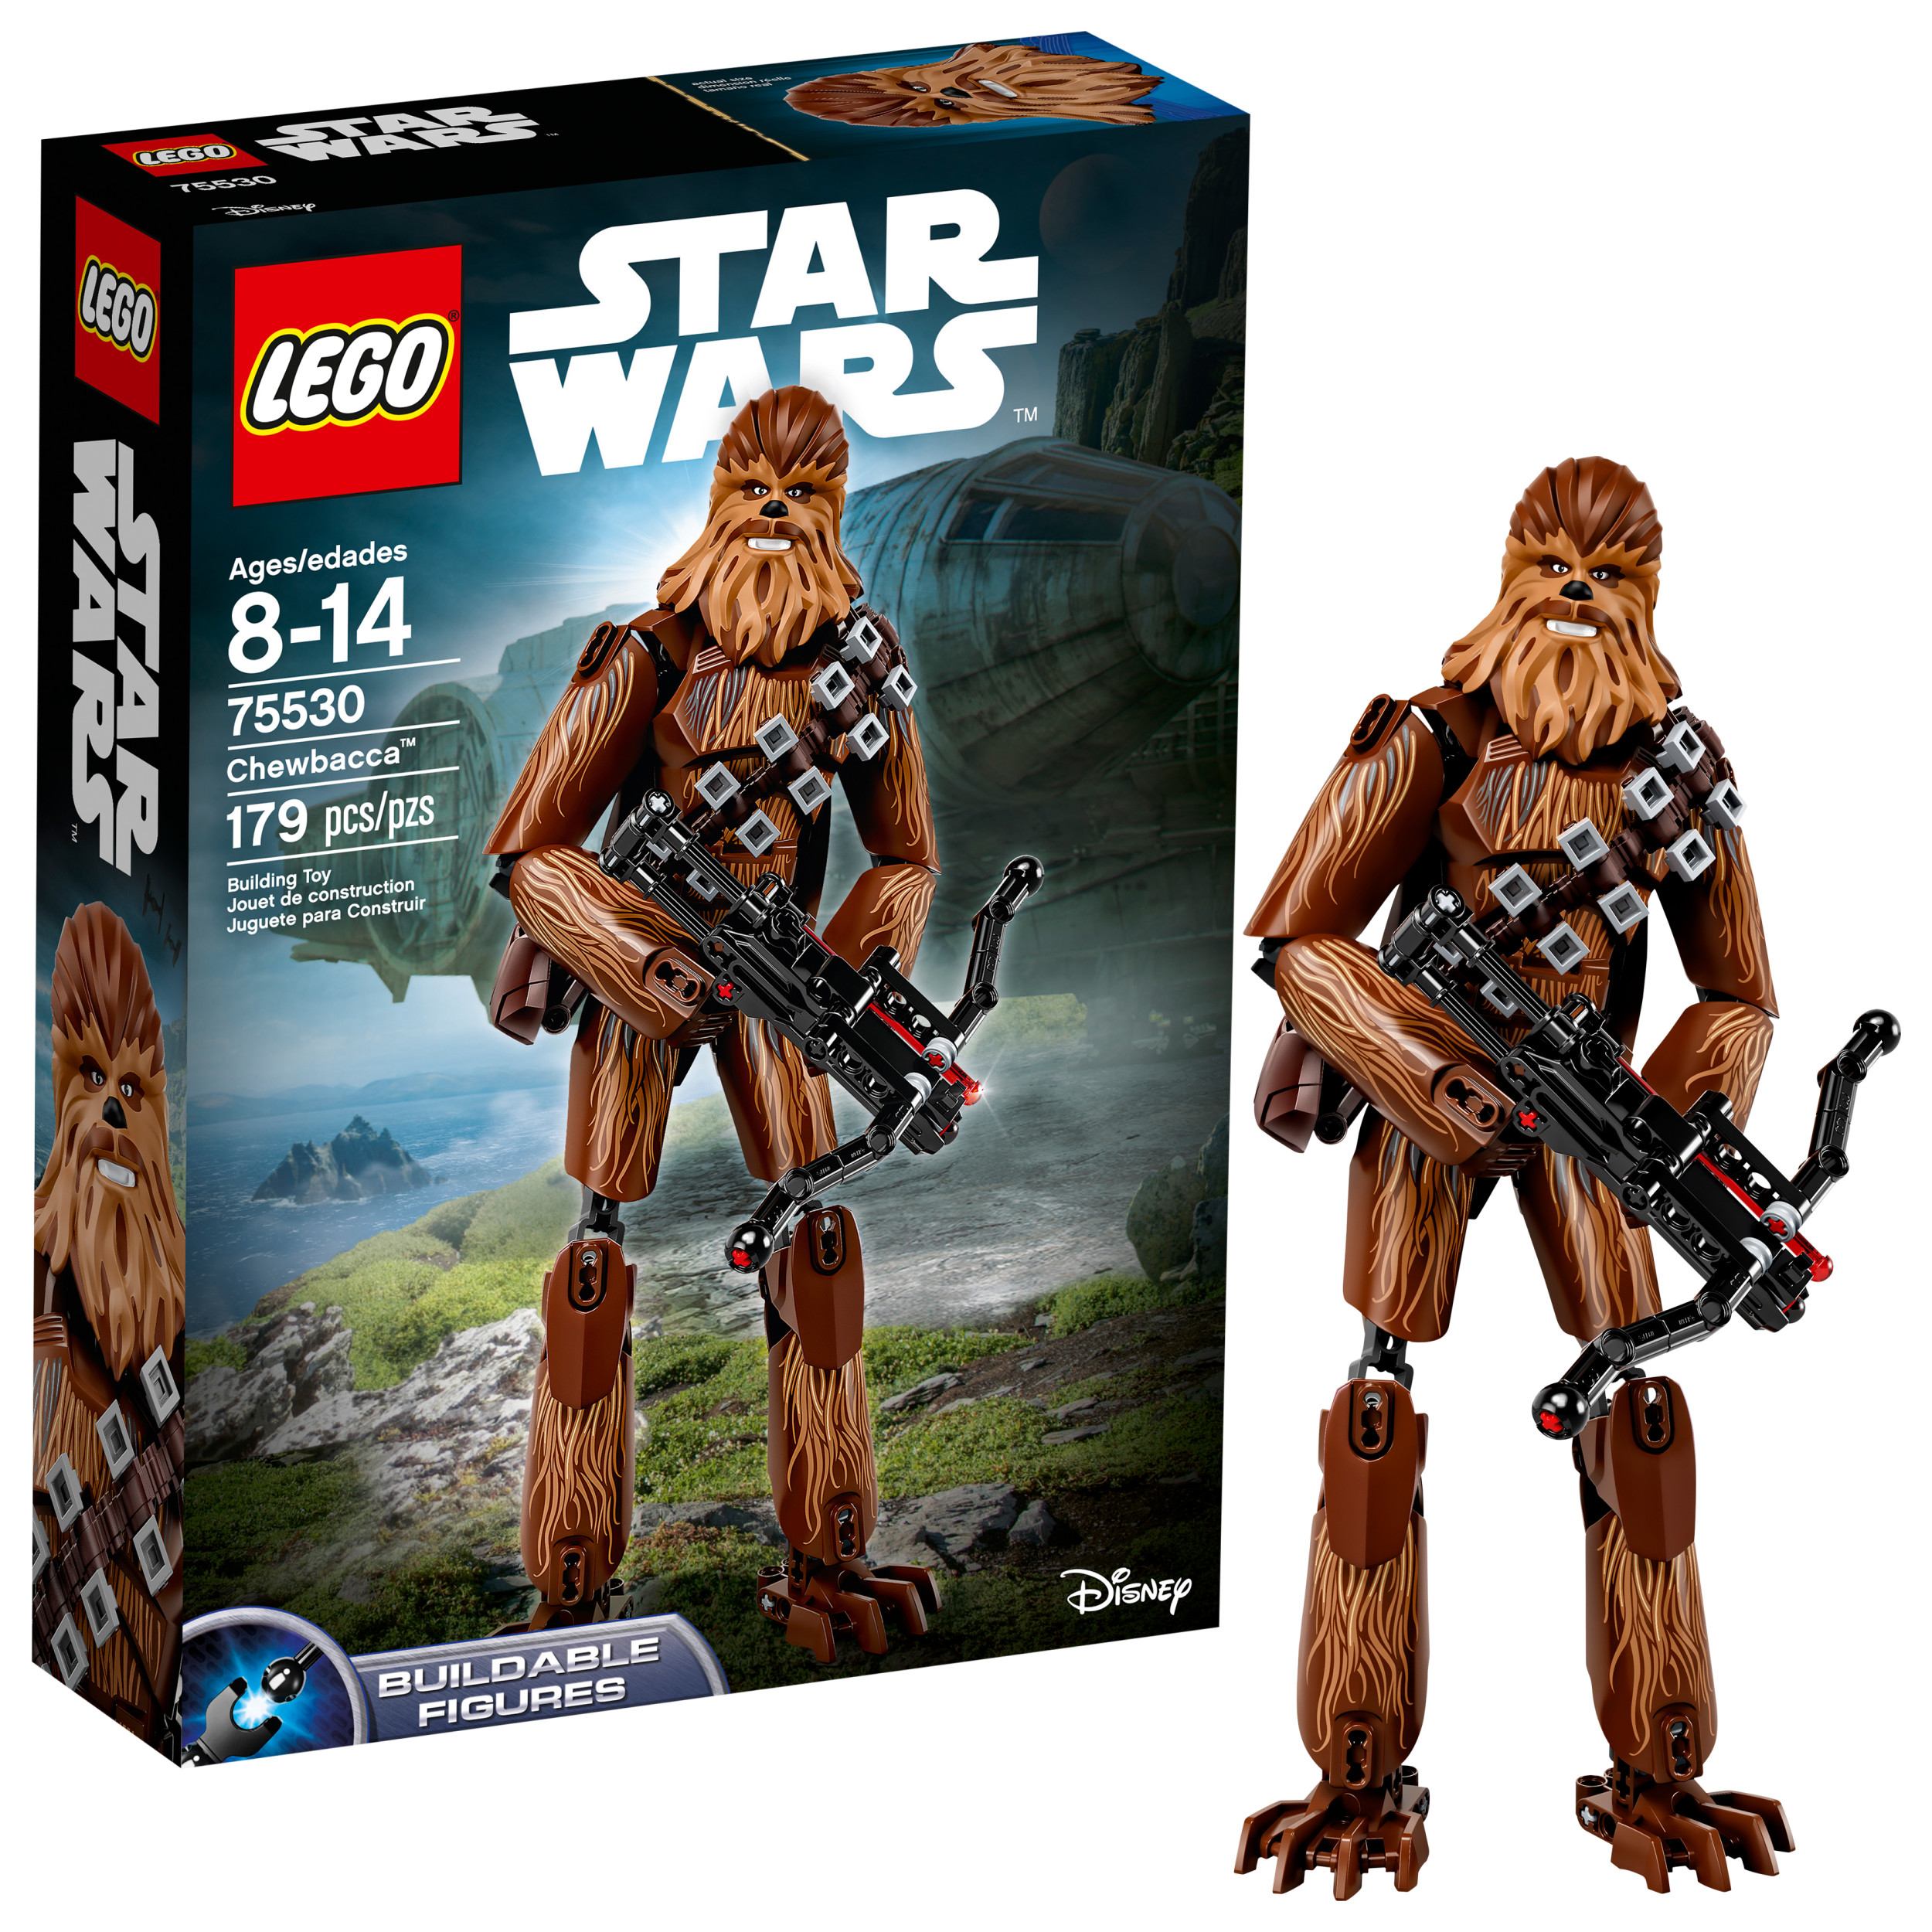 LEGO Constraction Star Wars Chewbacca™ 75530